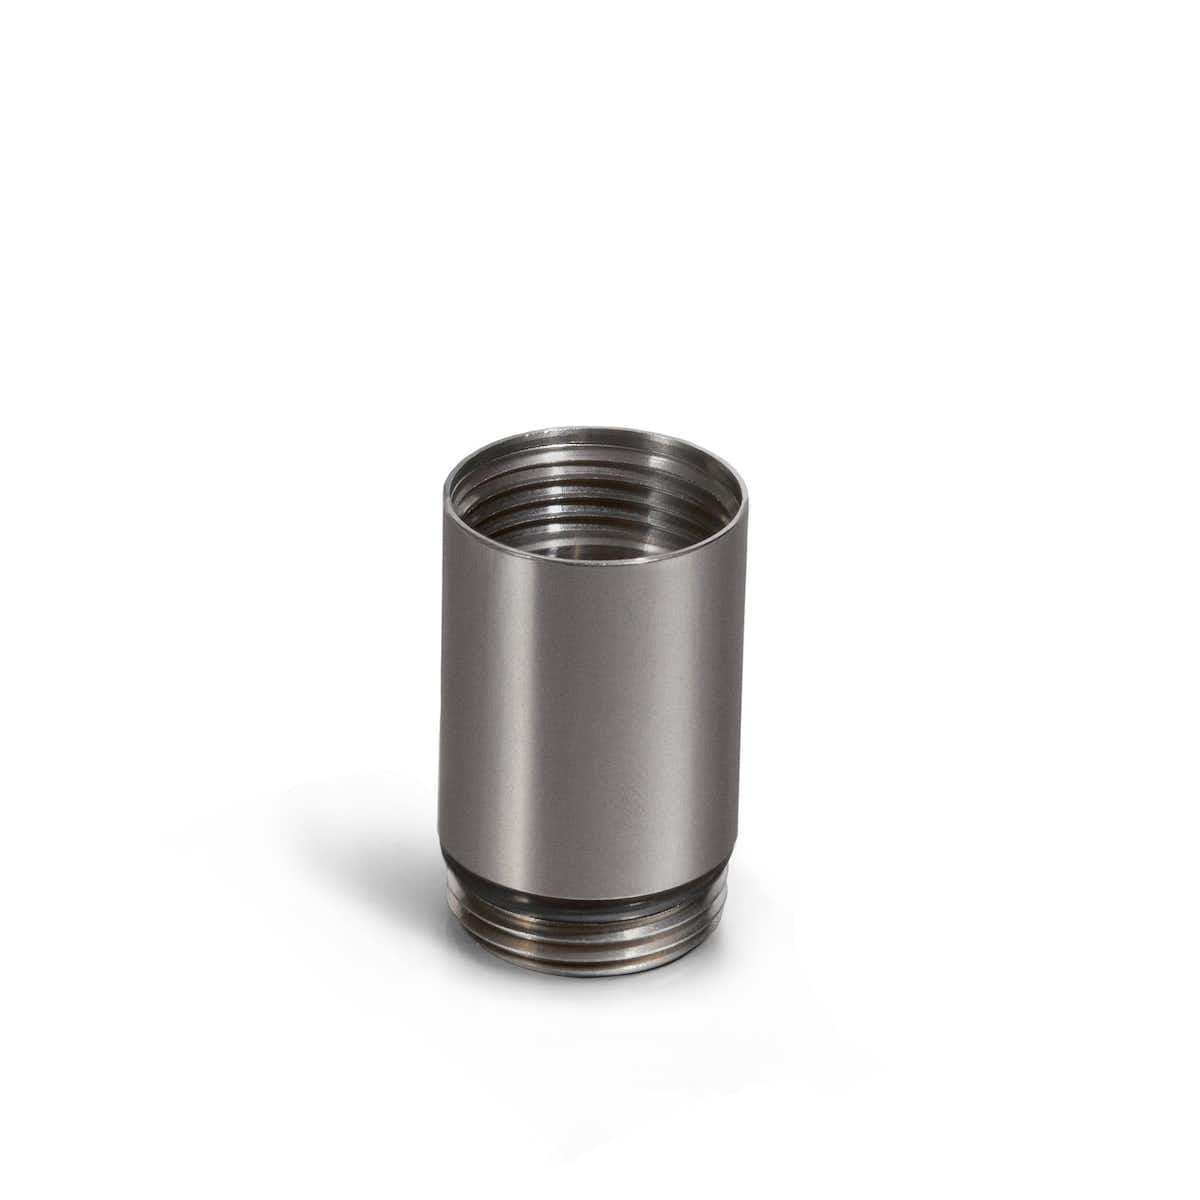 Slim Additional Chamber Pill Holder in Stainless Steel